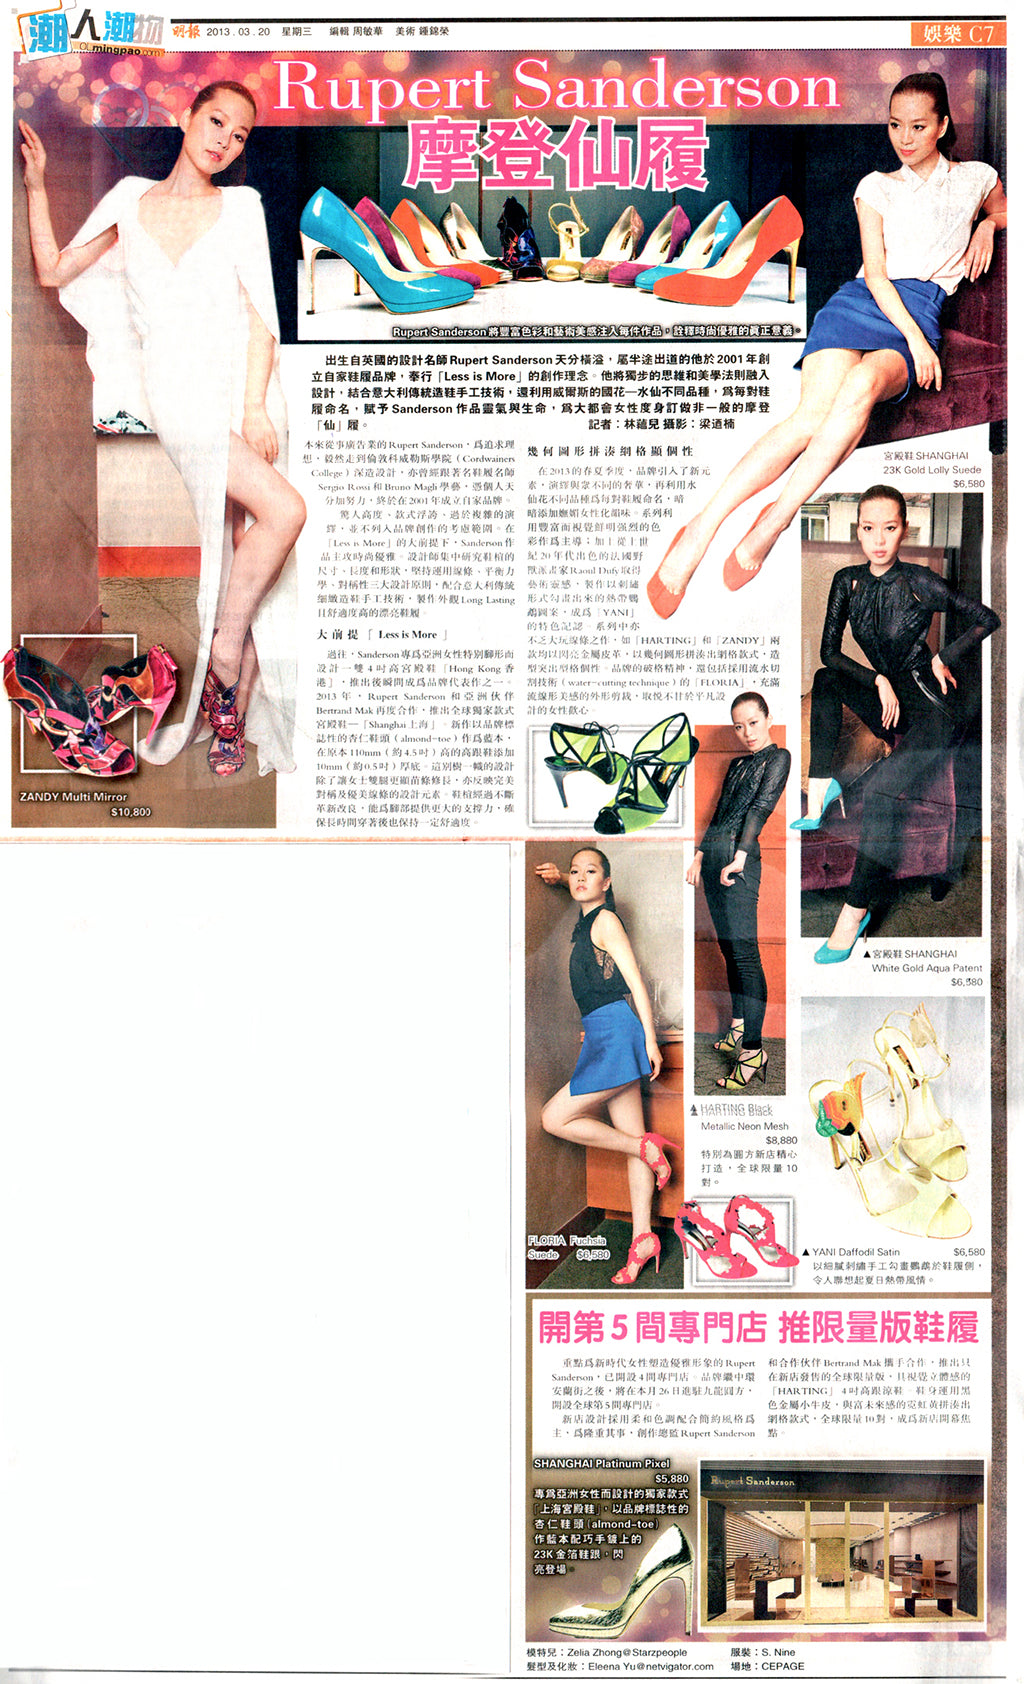 Rupert Sanderson X S.Nine featured in Ming Pao Daily, 20 March 2013